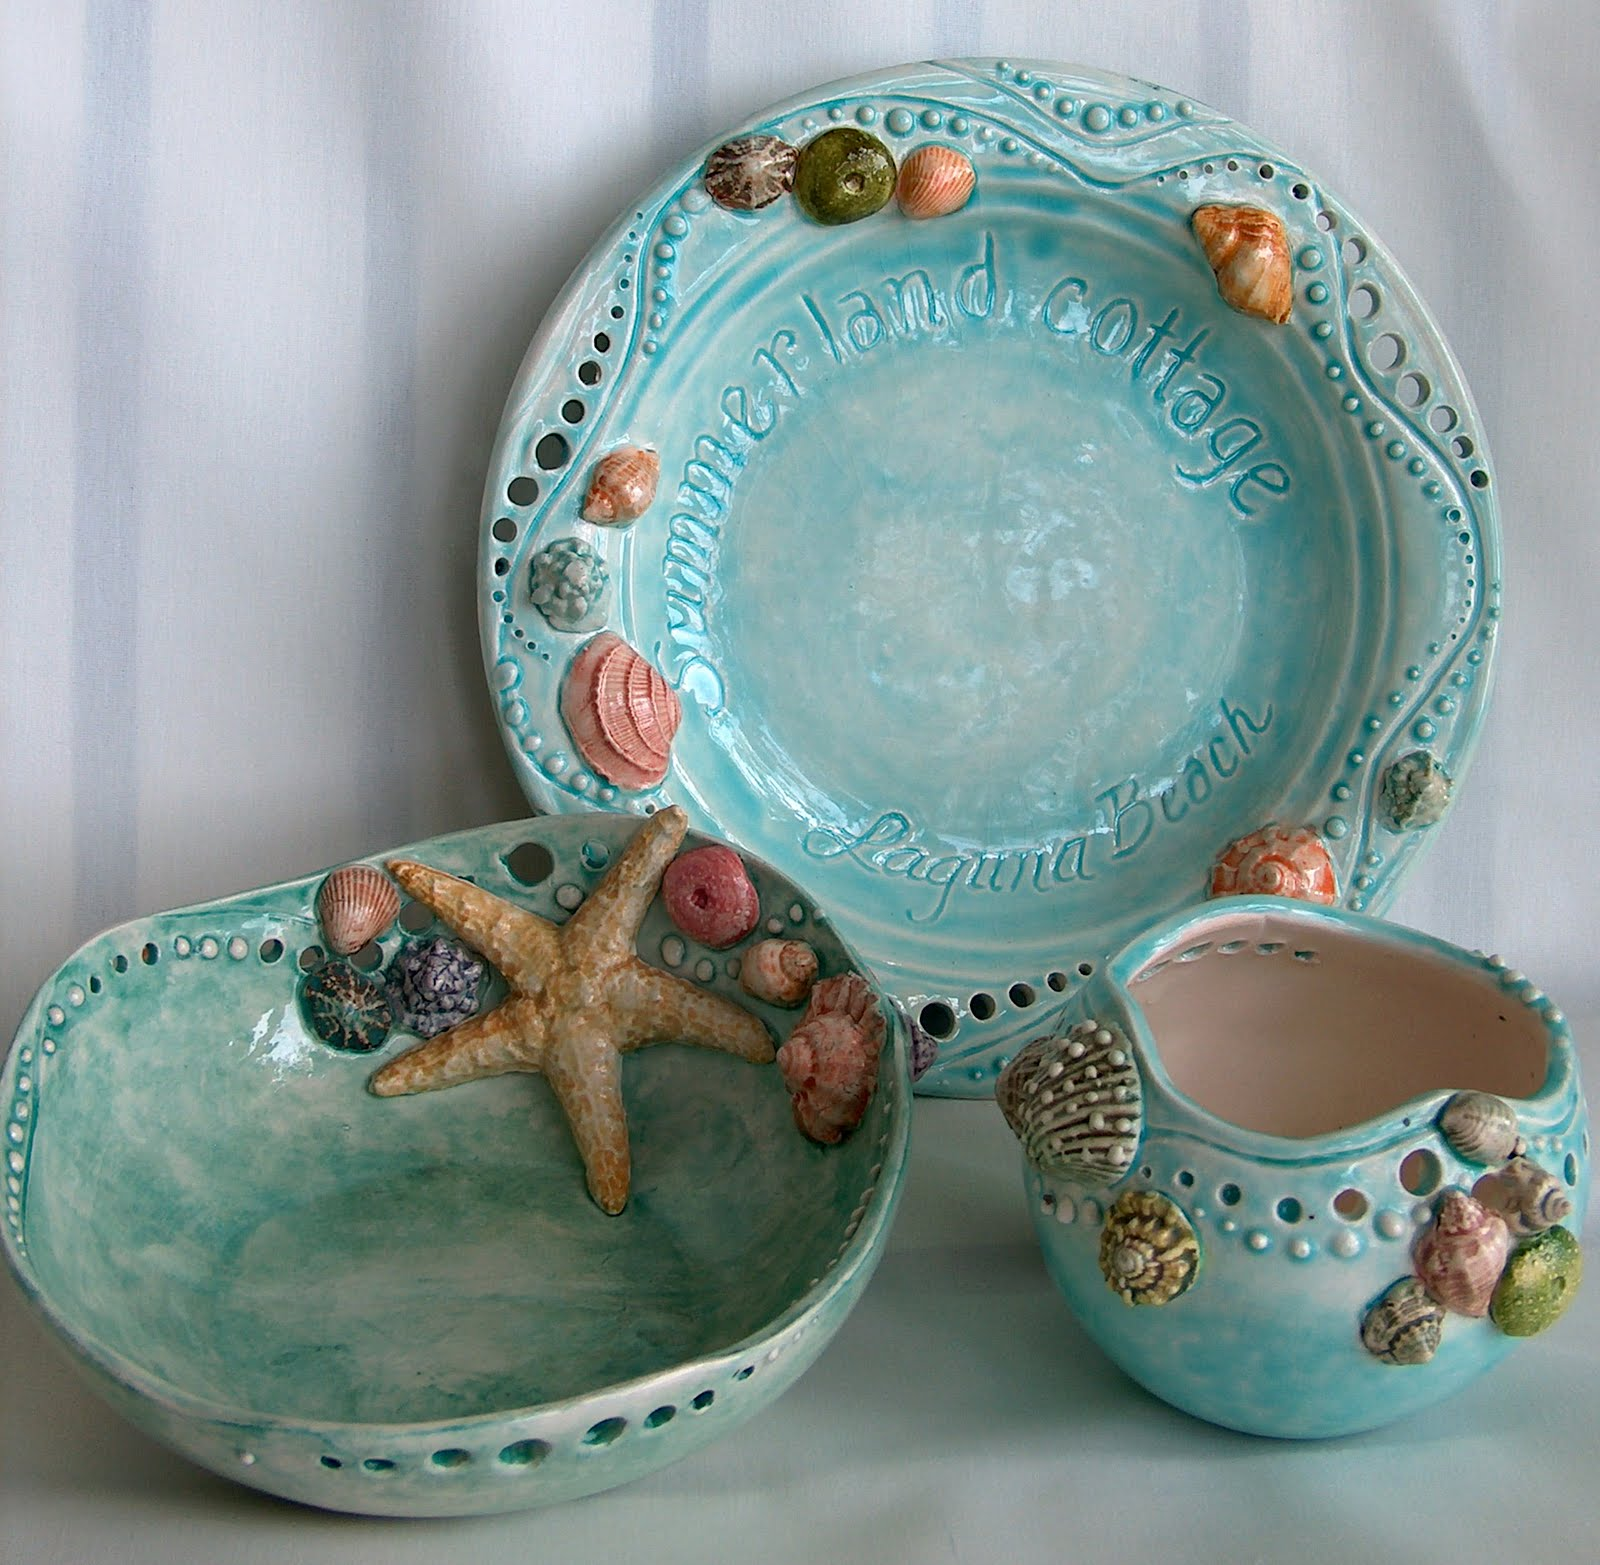 Summerland Cottage Studio Seas Ceramic Dish Designs & Beach House Dishes | The best beaches in the world